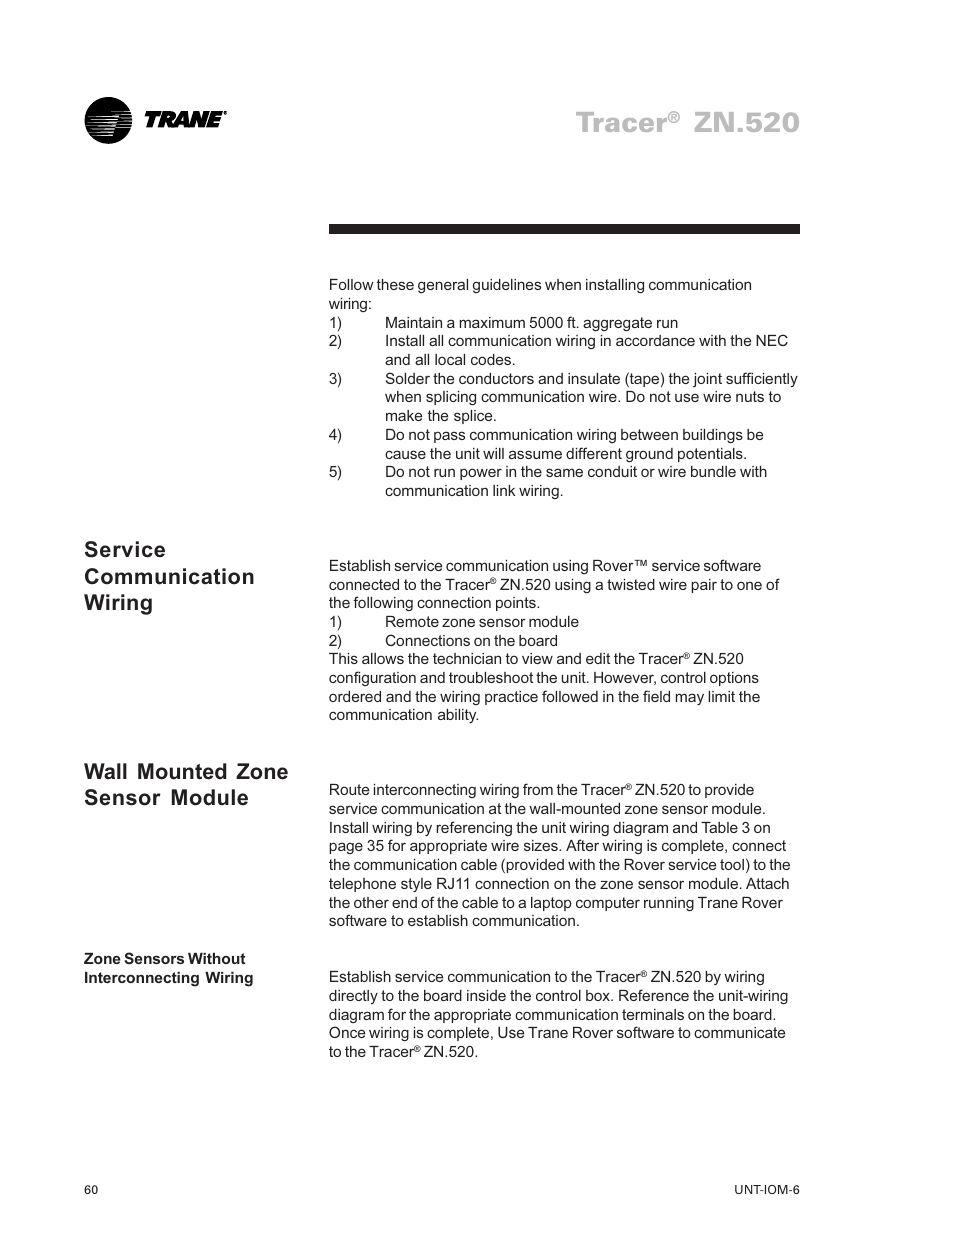 Tracer, Zn.520 | Trane LO User Manual | Page 60 / 136 on lights in walls, painting in walls, windows in walls, doors in walls, pipes in walls, heating in walls, insulation in walls, plumbing in walls, conduit in walls, plugs in walls, cable in walls, outlets in walls,